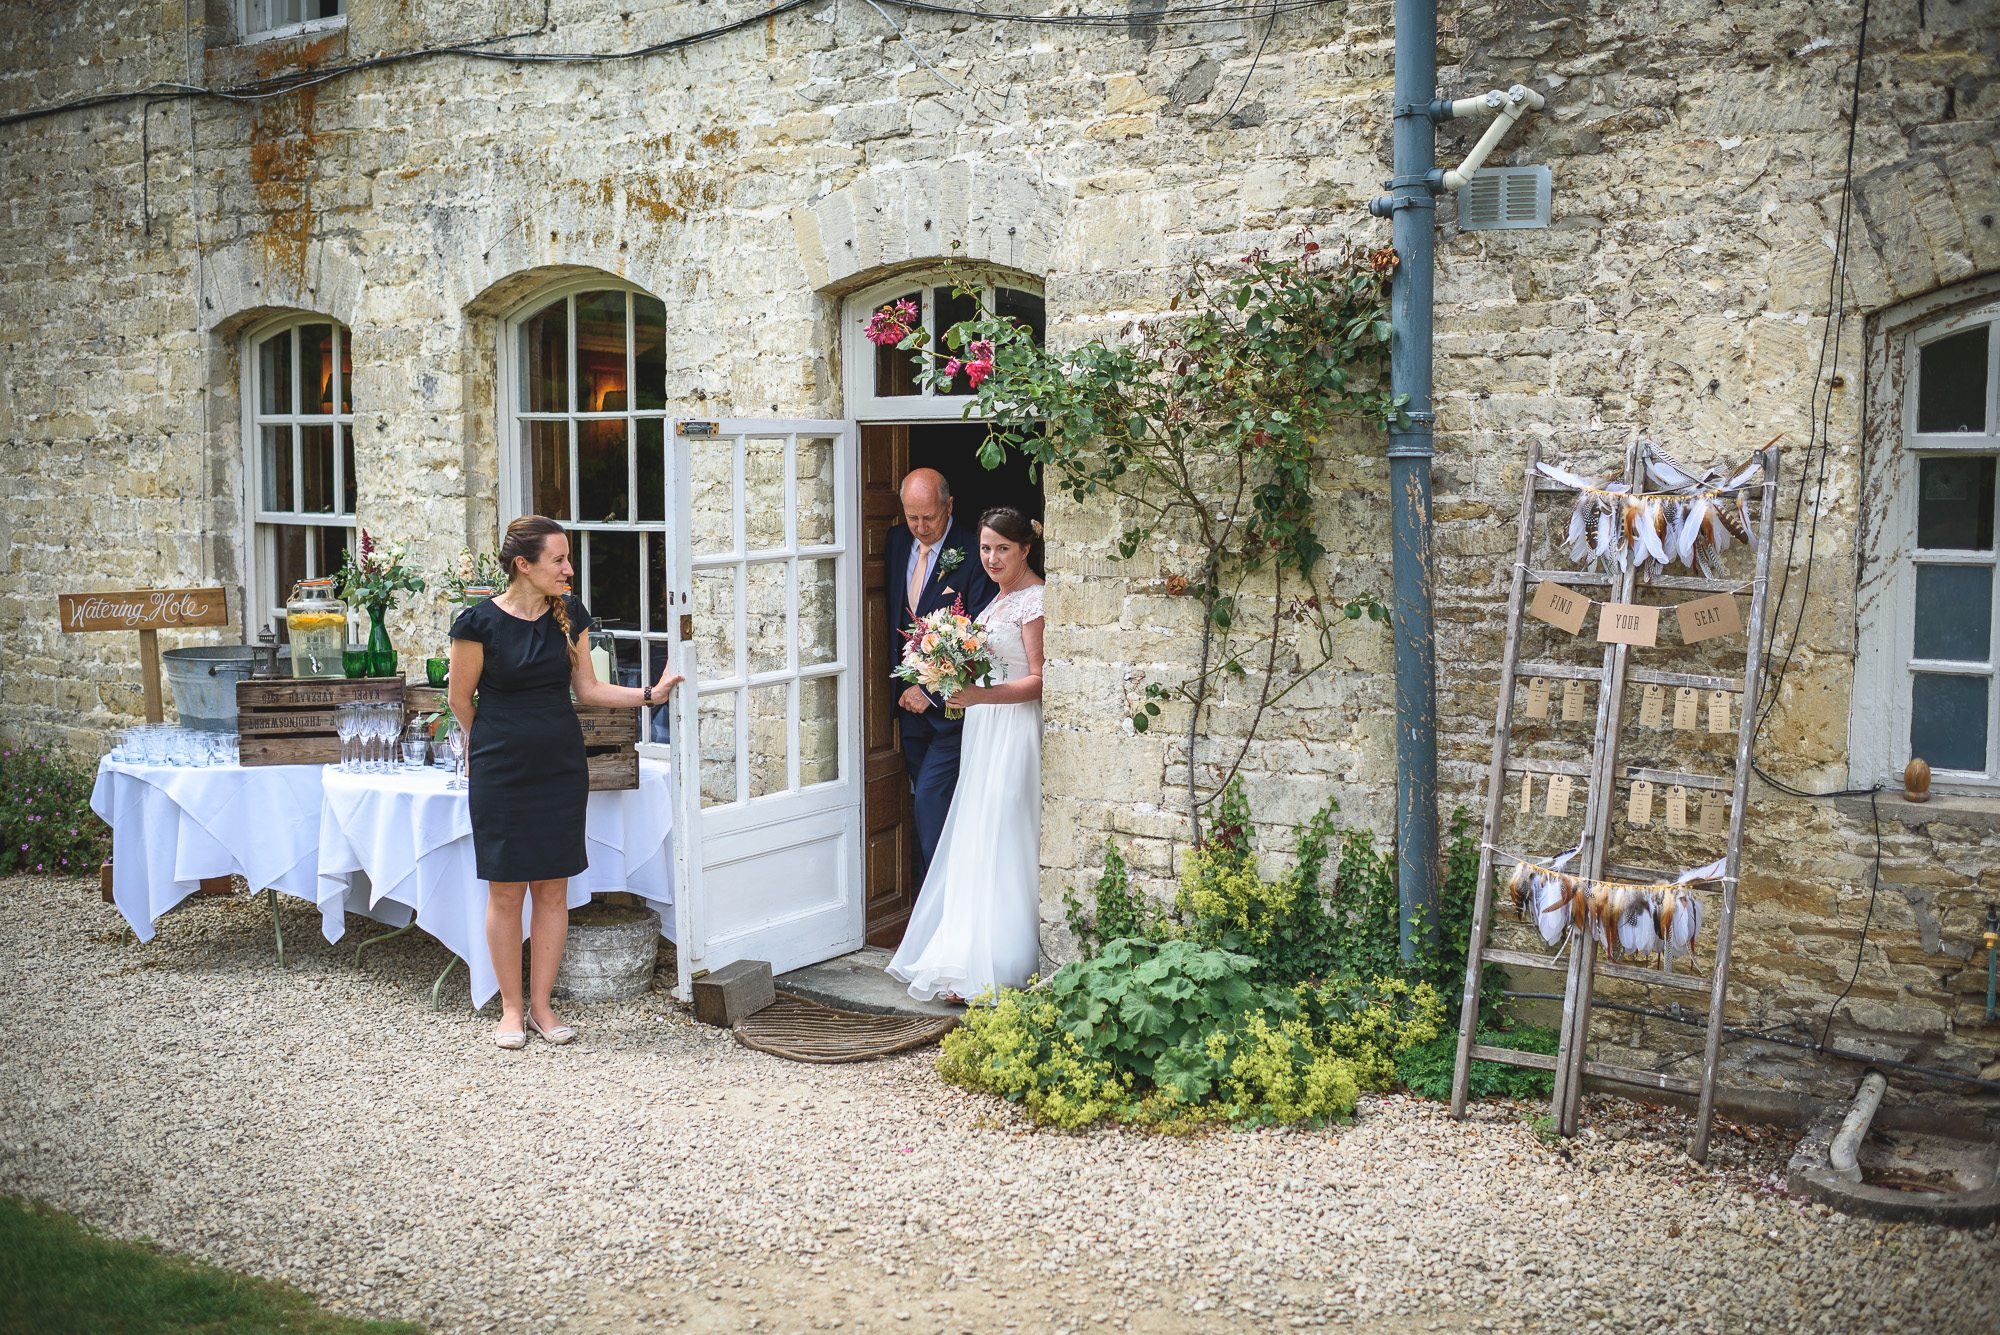 Jem and Andy - - The Rectory at Crudwell wedding photography (77 of 195)